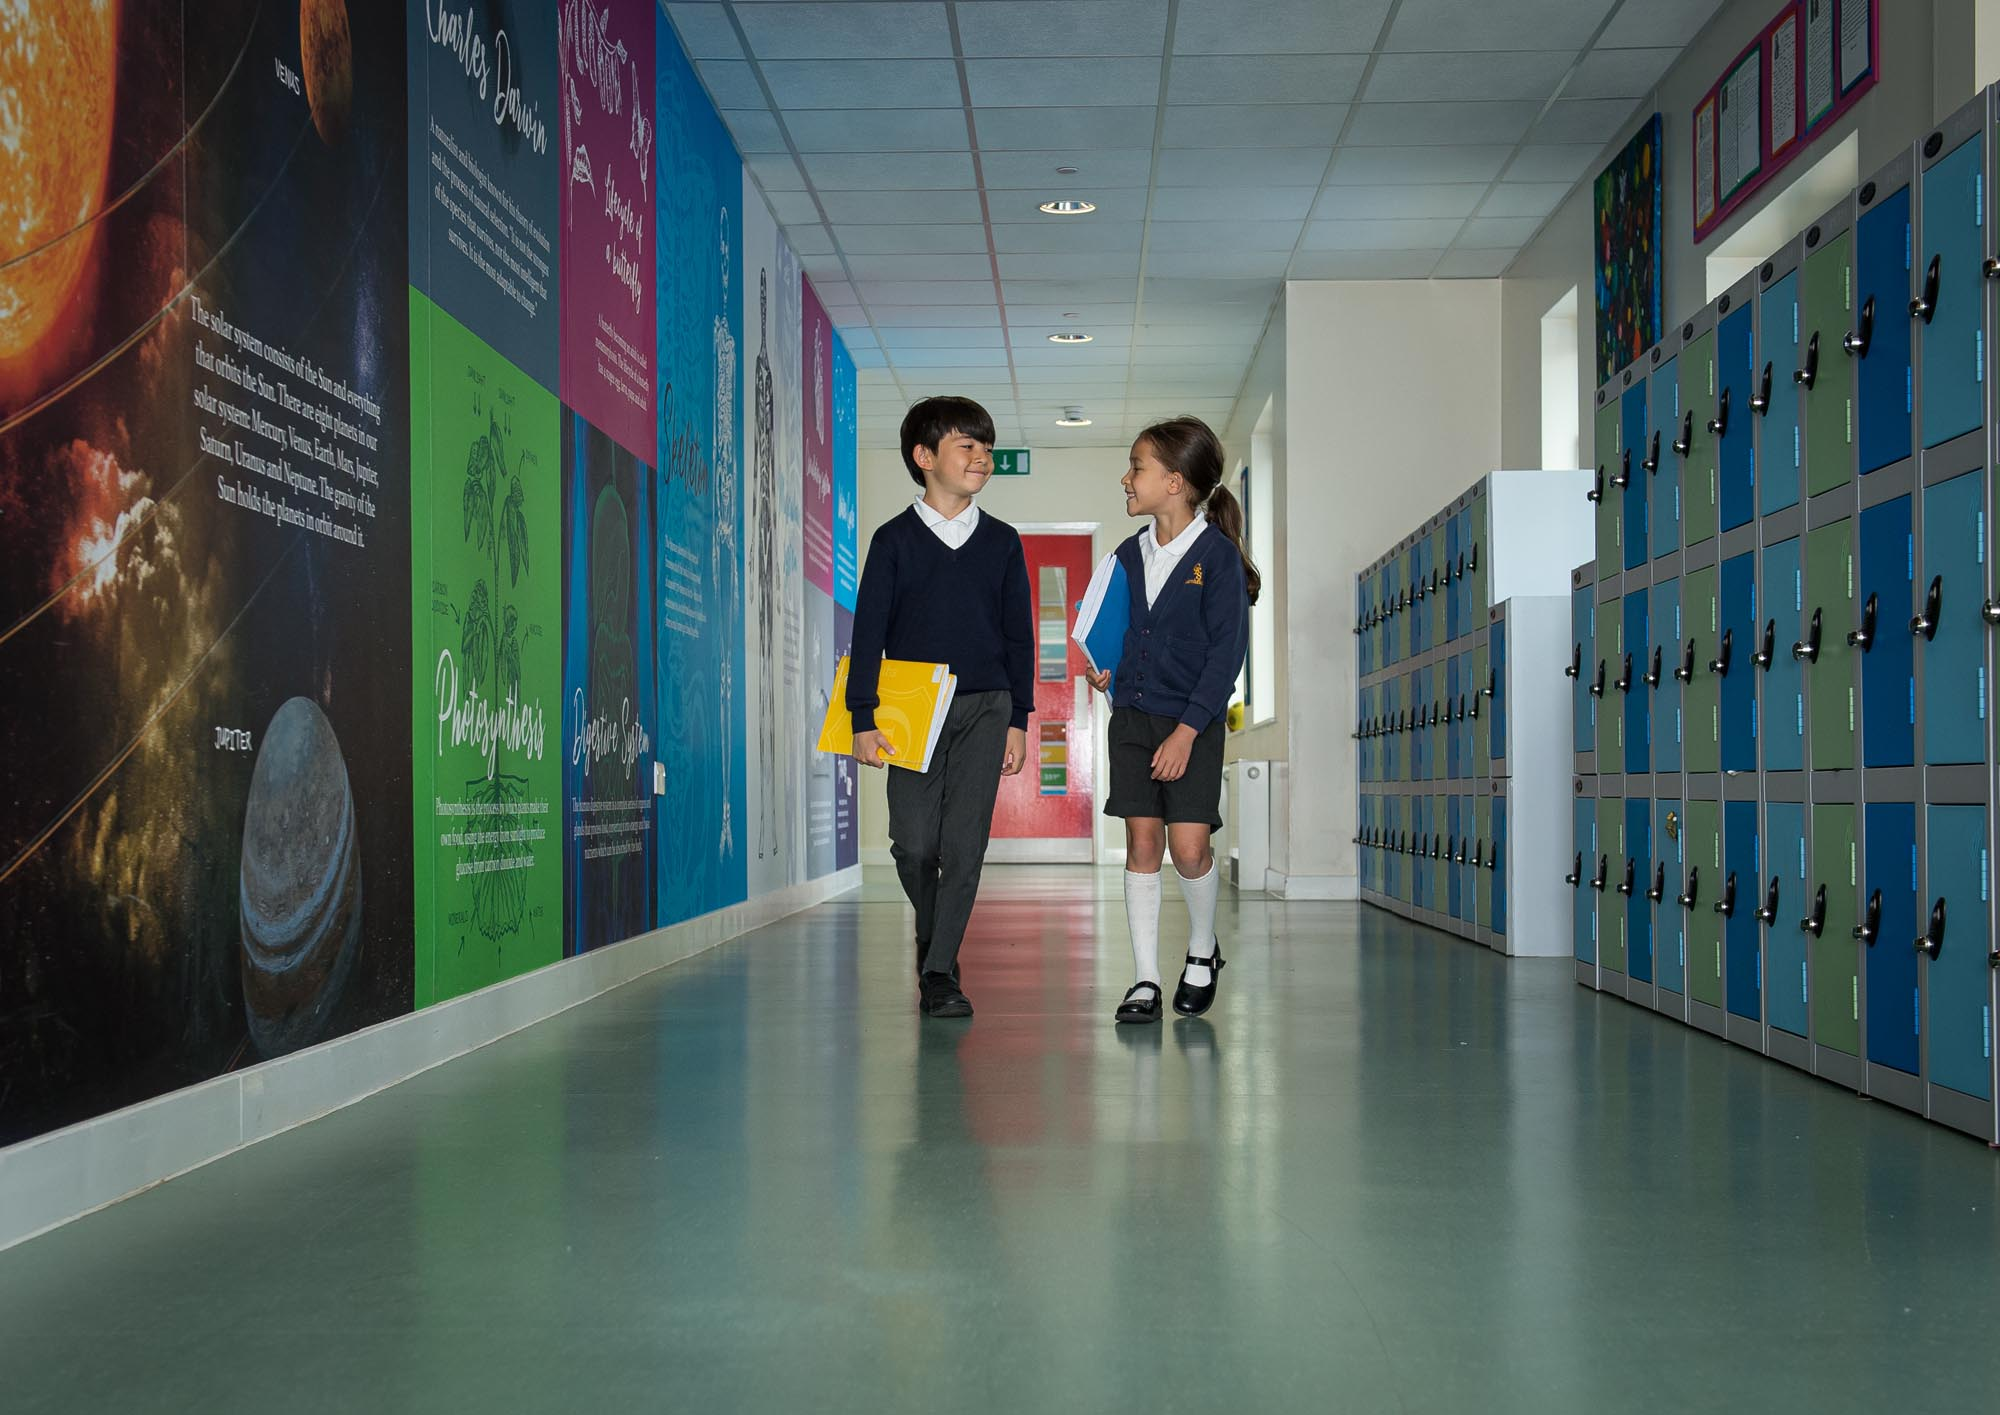 Boy and girl walking in science corridor